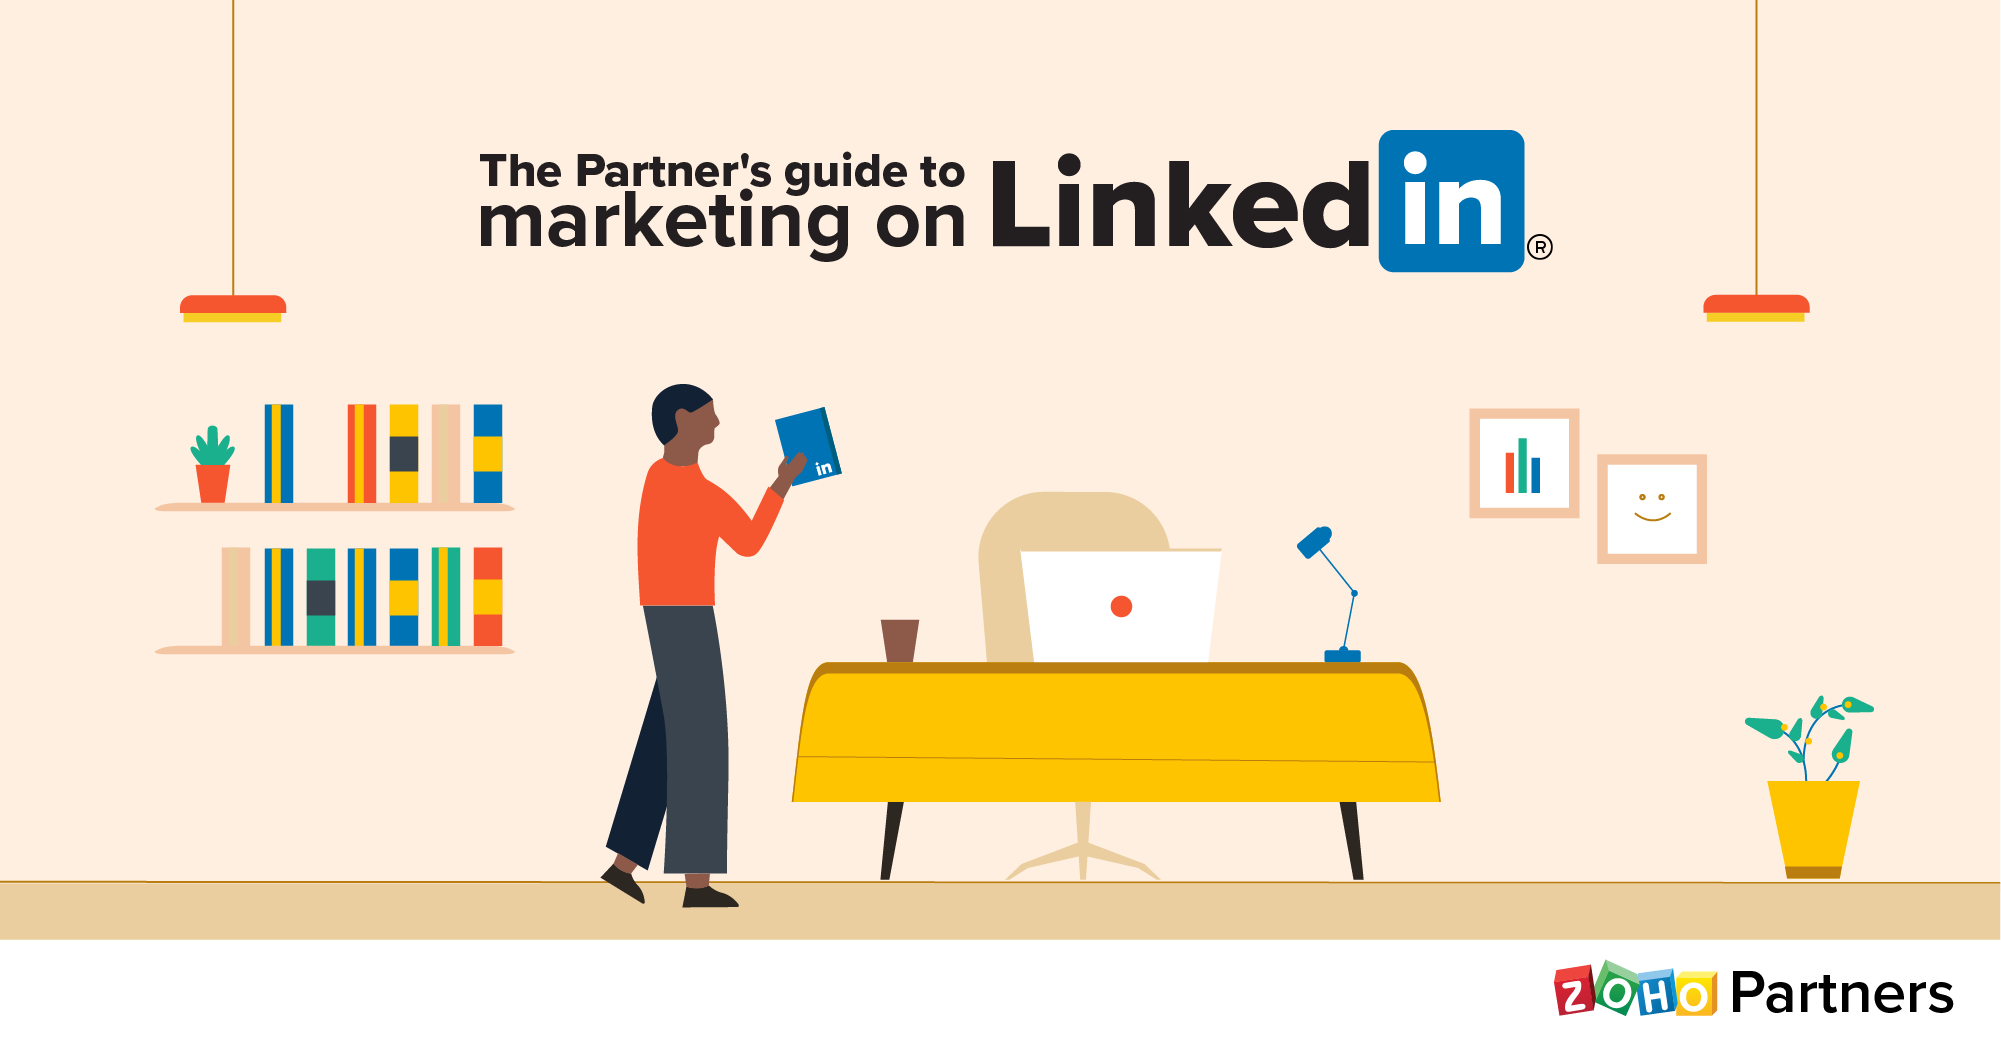 The Partner's guide to marketing on LinkedIn